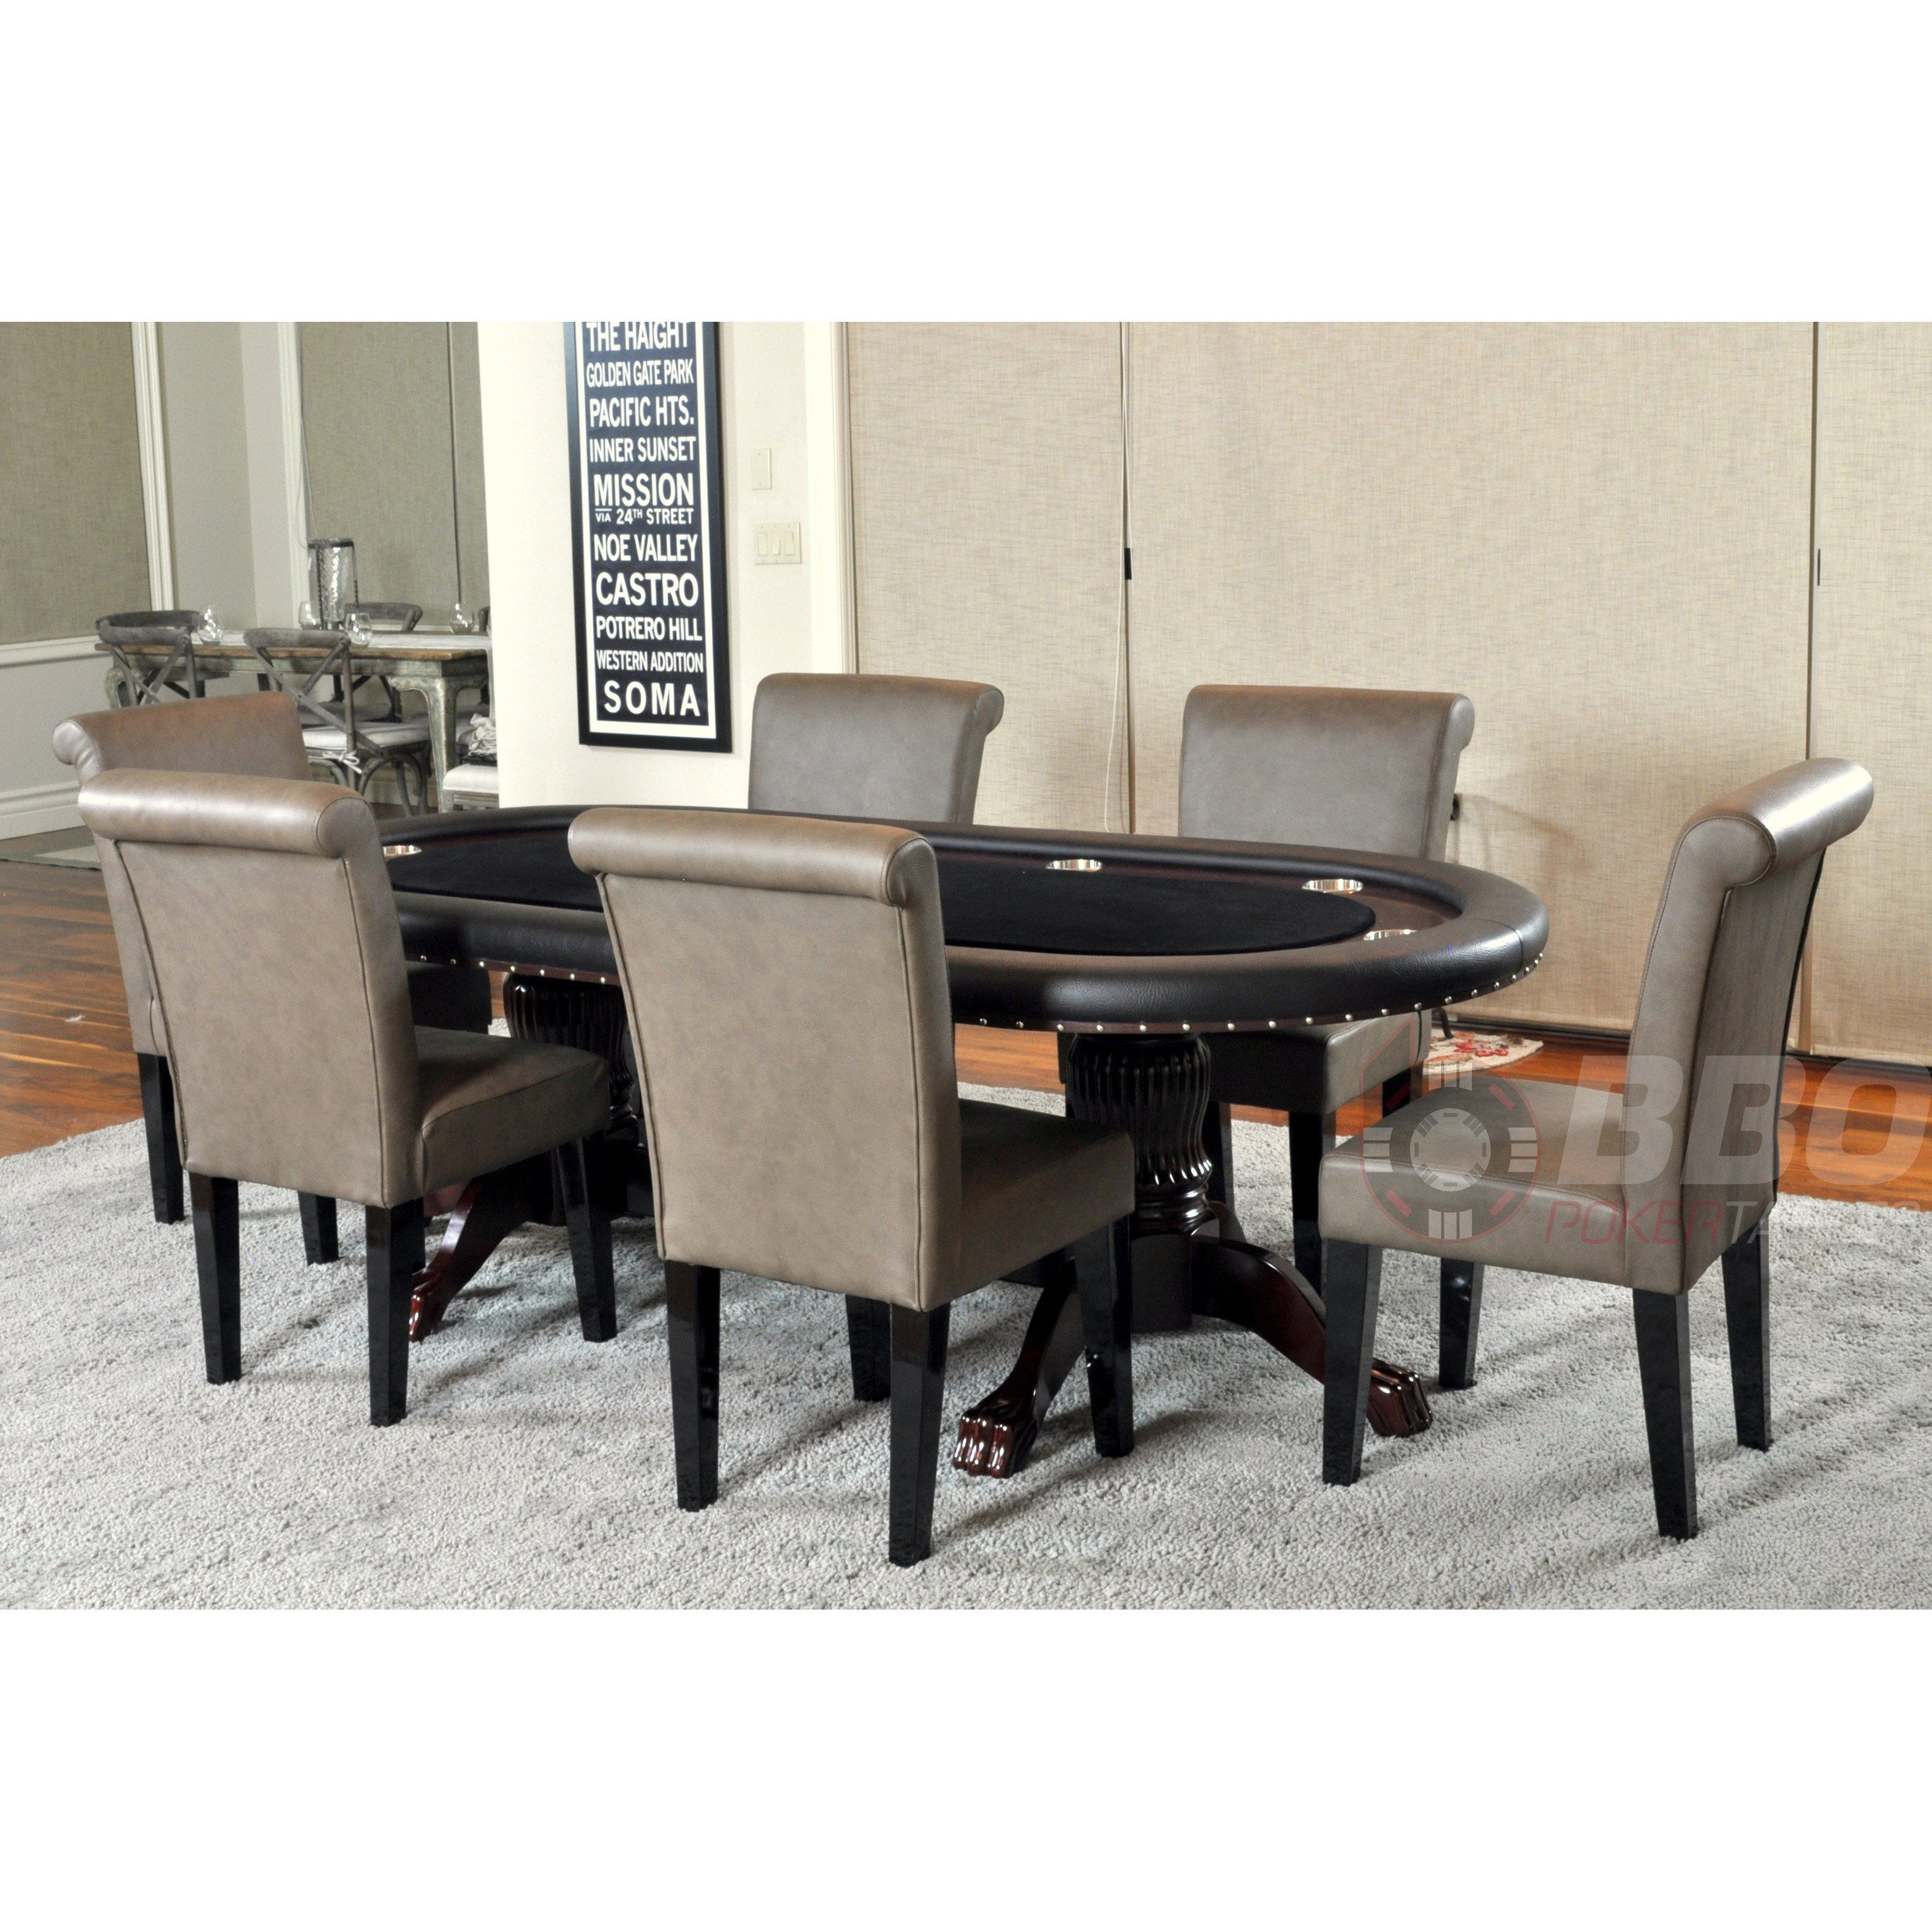 Bbo Poker Tables Rockwell 8 Piece Dining Table Set With Premium Chairs 3429 99 Dining Table Setting Table Dining Table Poker table and chairs set